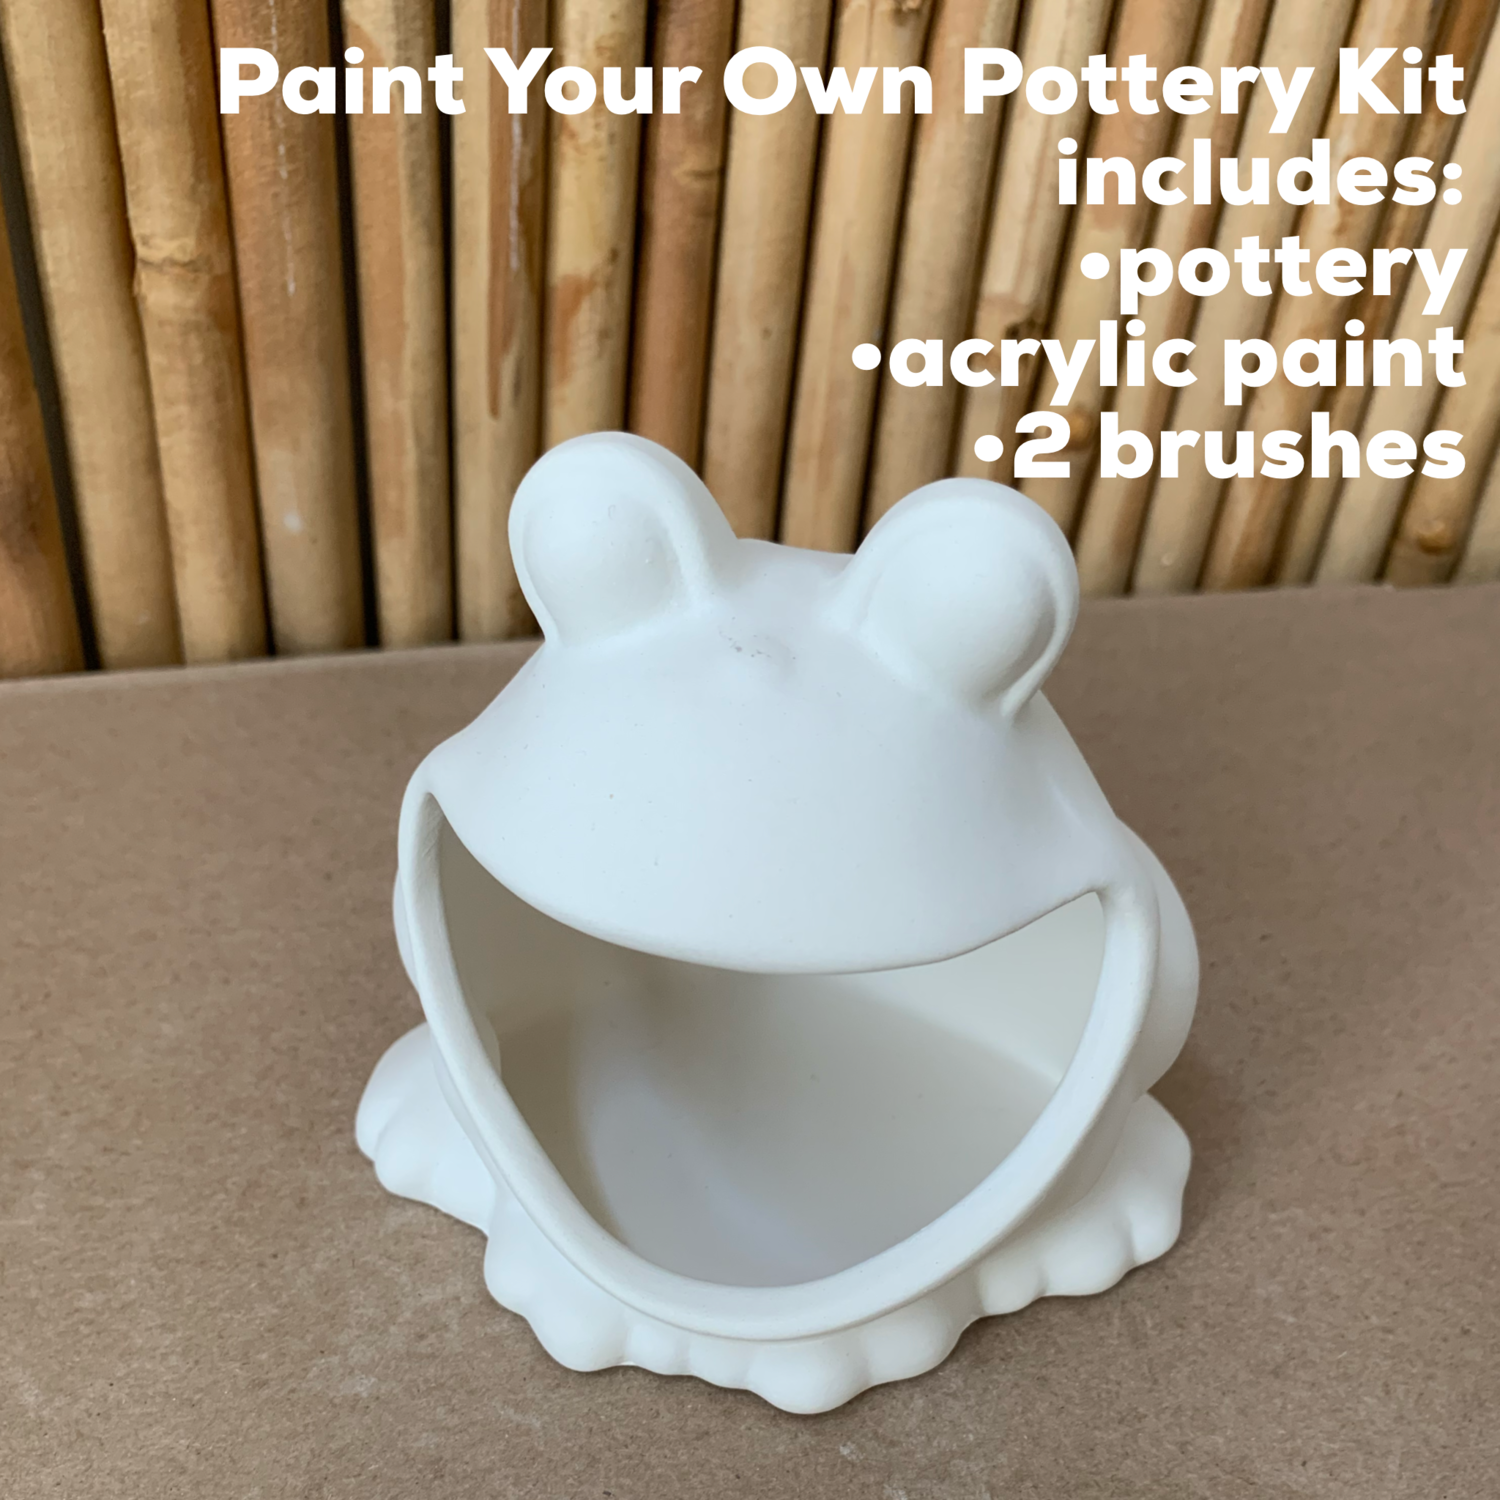 NO FIRE Paint Your Own Pottery Kit -  Ceramic Frog Acrylic Painting Kit